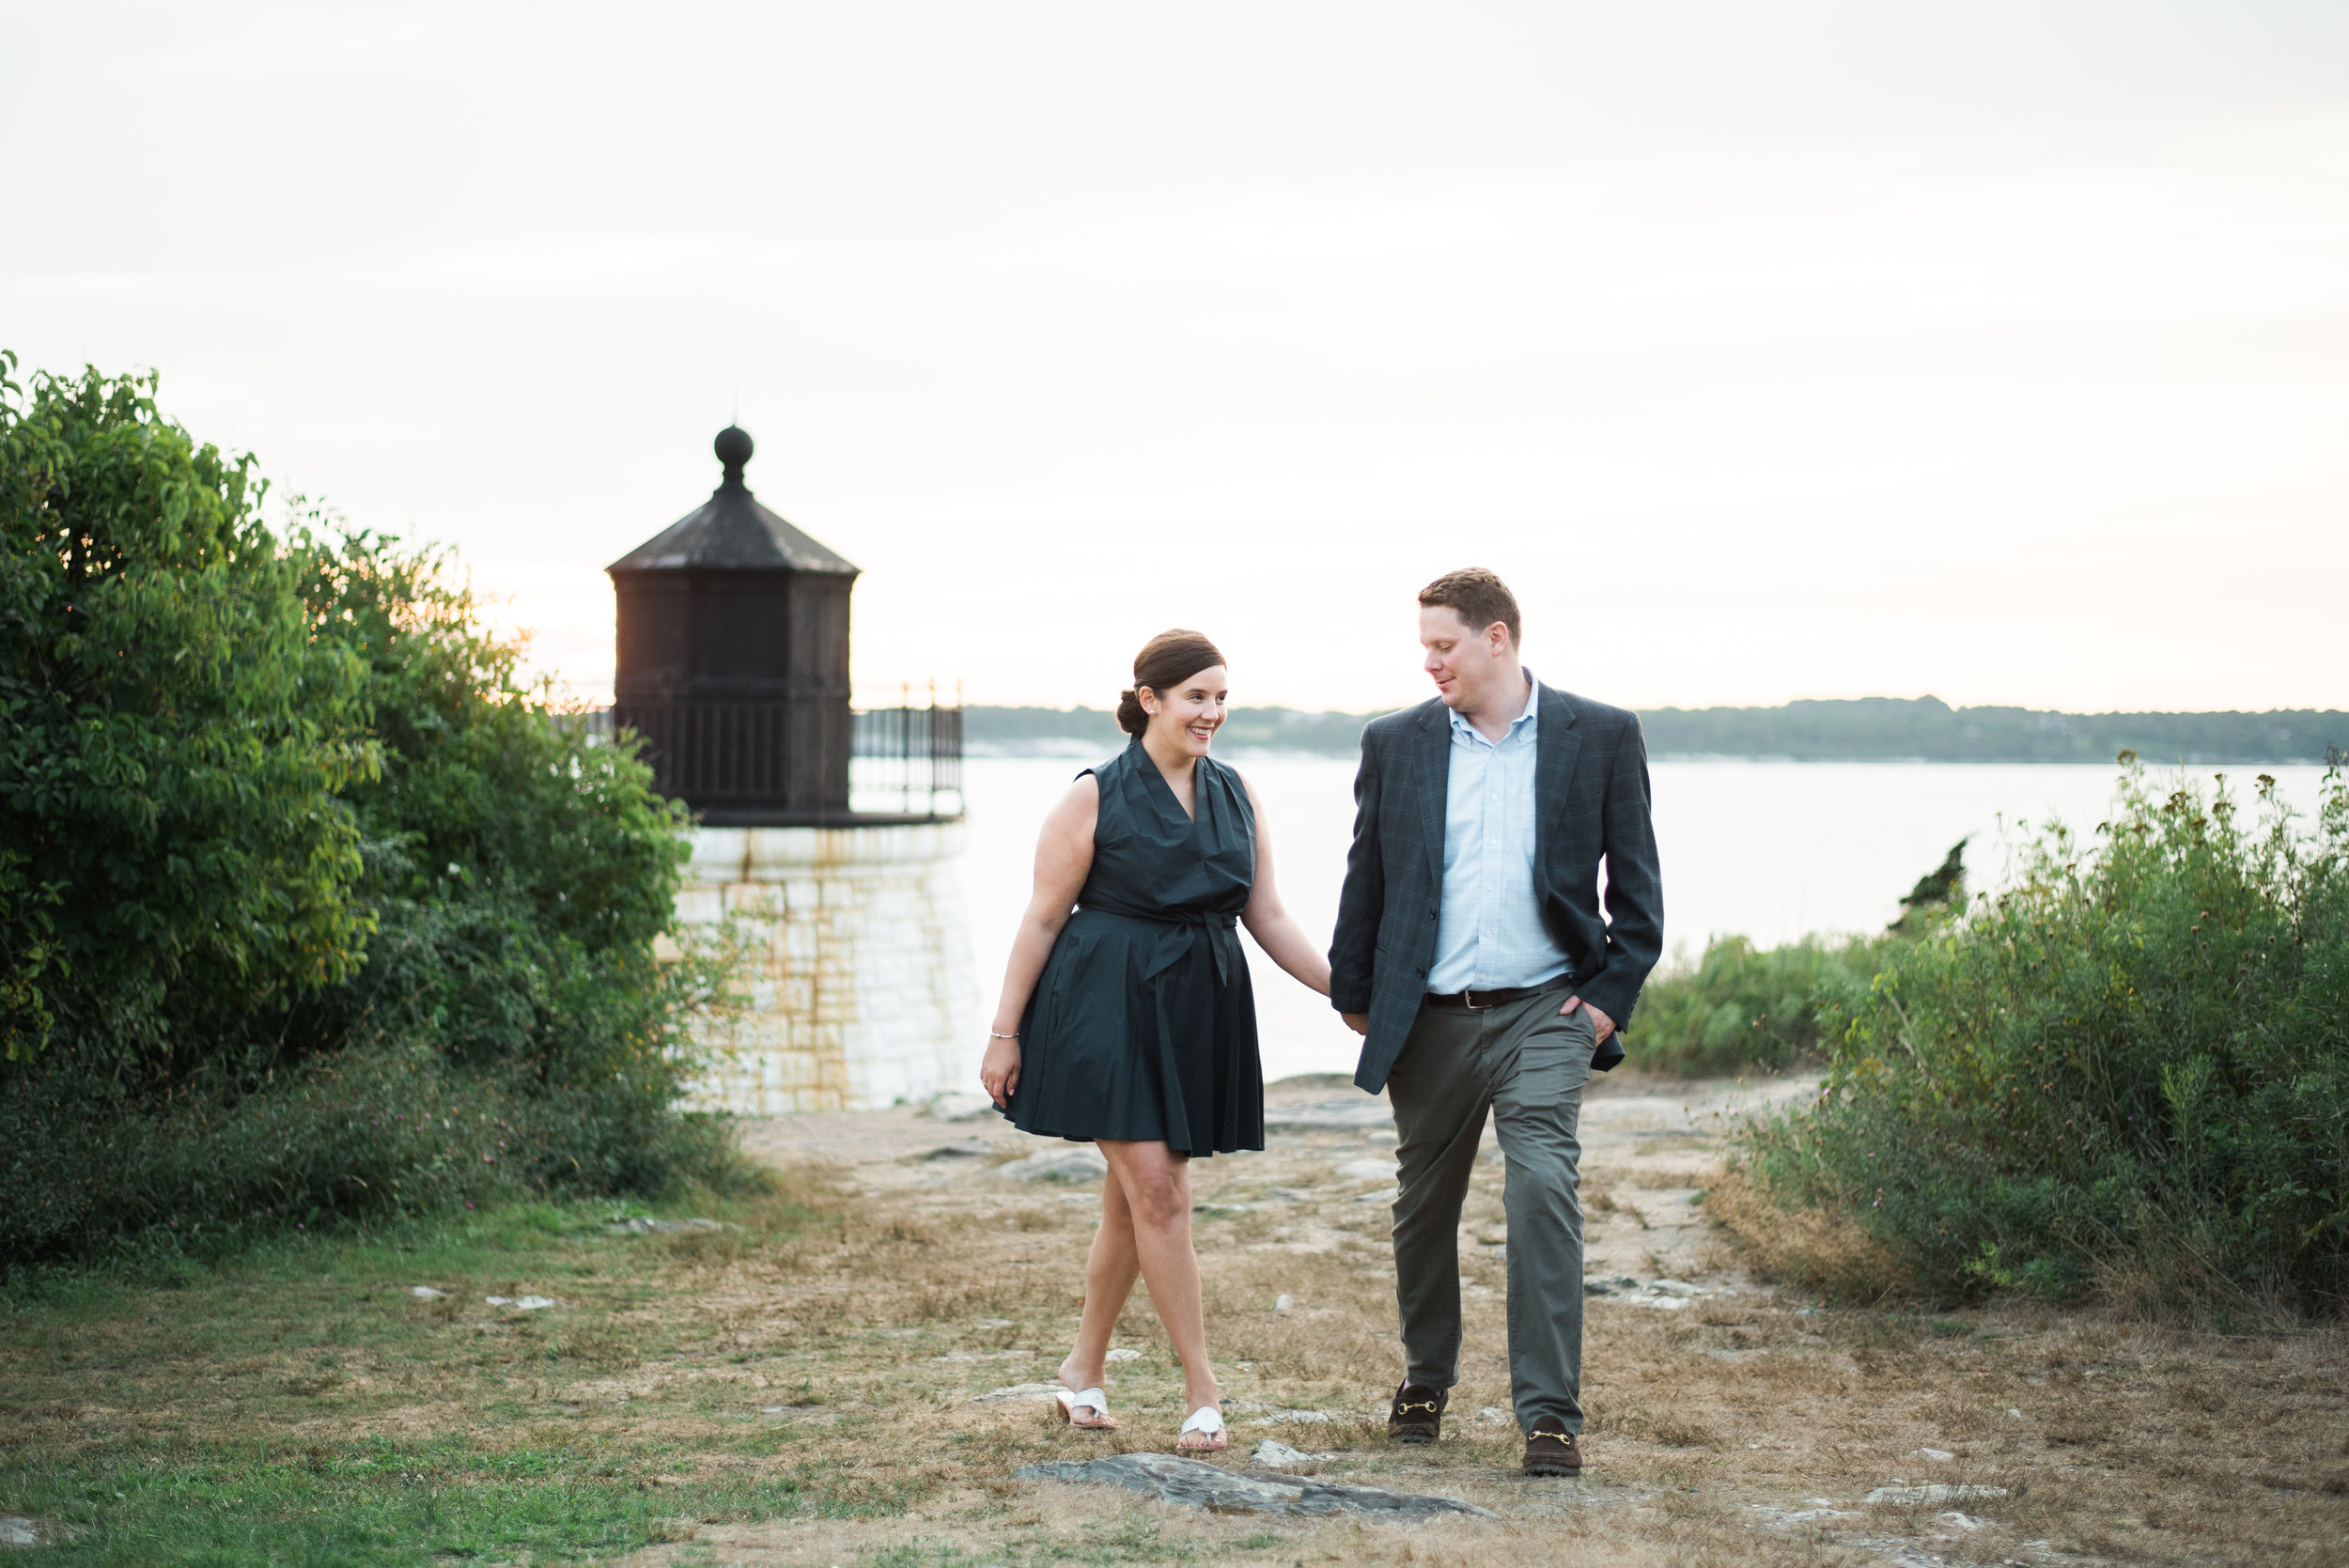 Jessica K Feiden Photography_Meredith + David's Newport Engagement Session-68.jpg